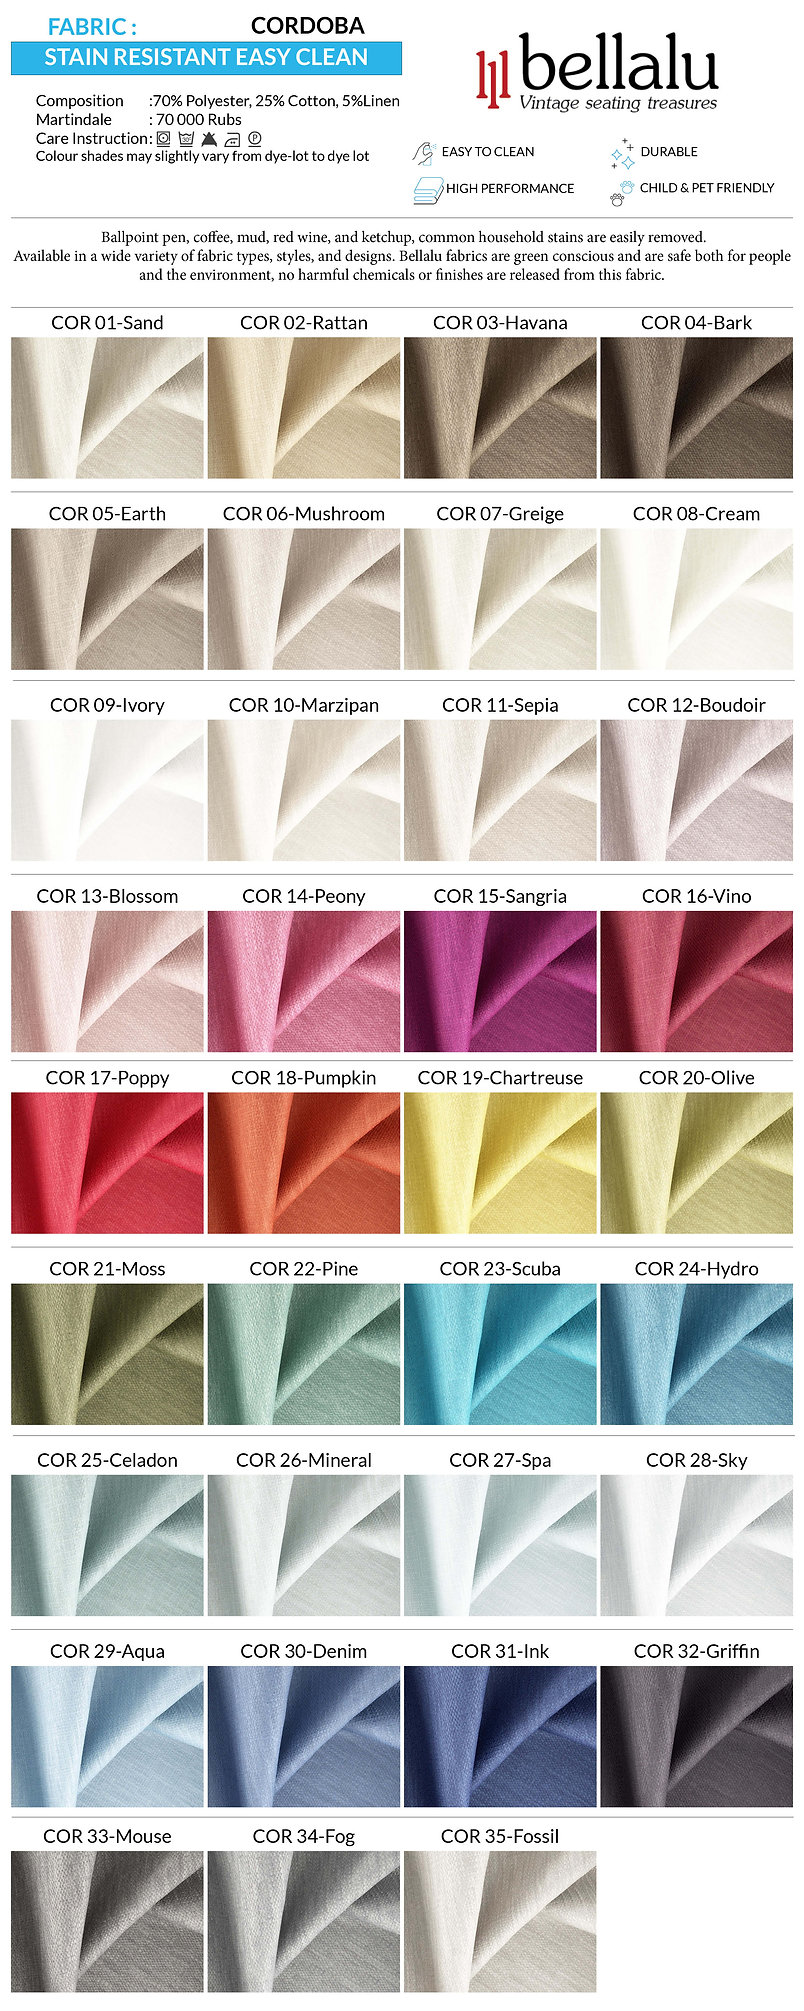 CORDOBA FABRIC DEF IN 1 closeup fv.jpg